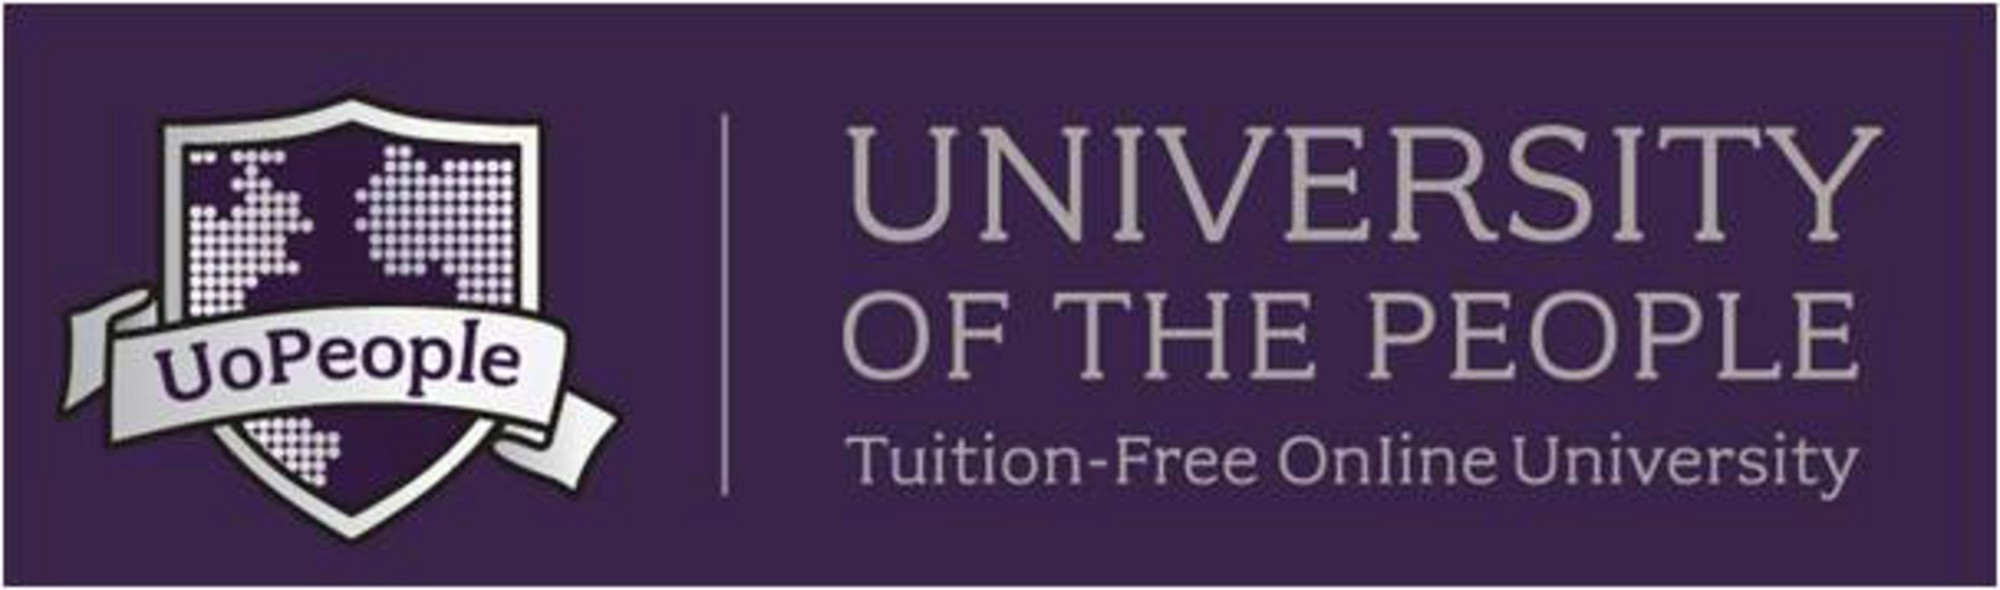 the university of the people - iHarare Jobs